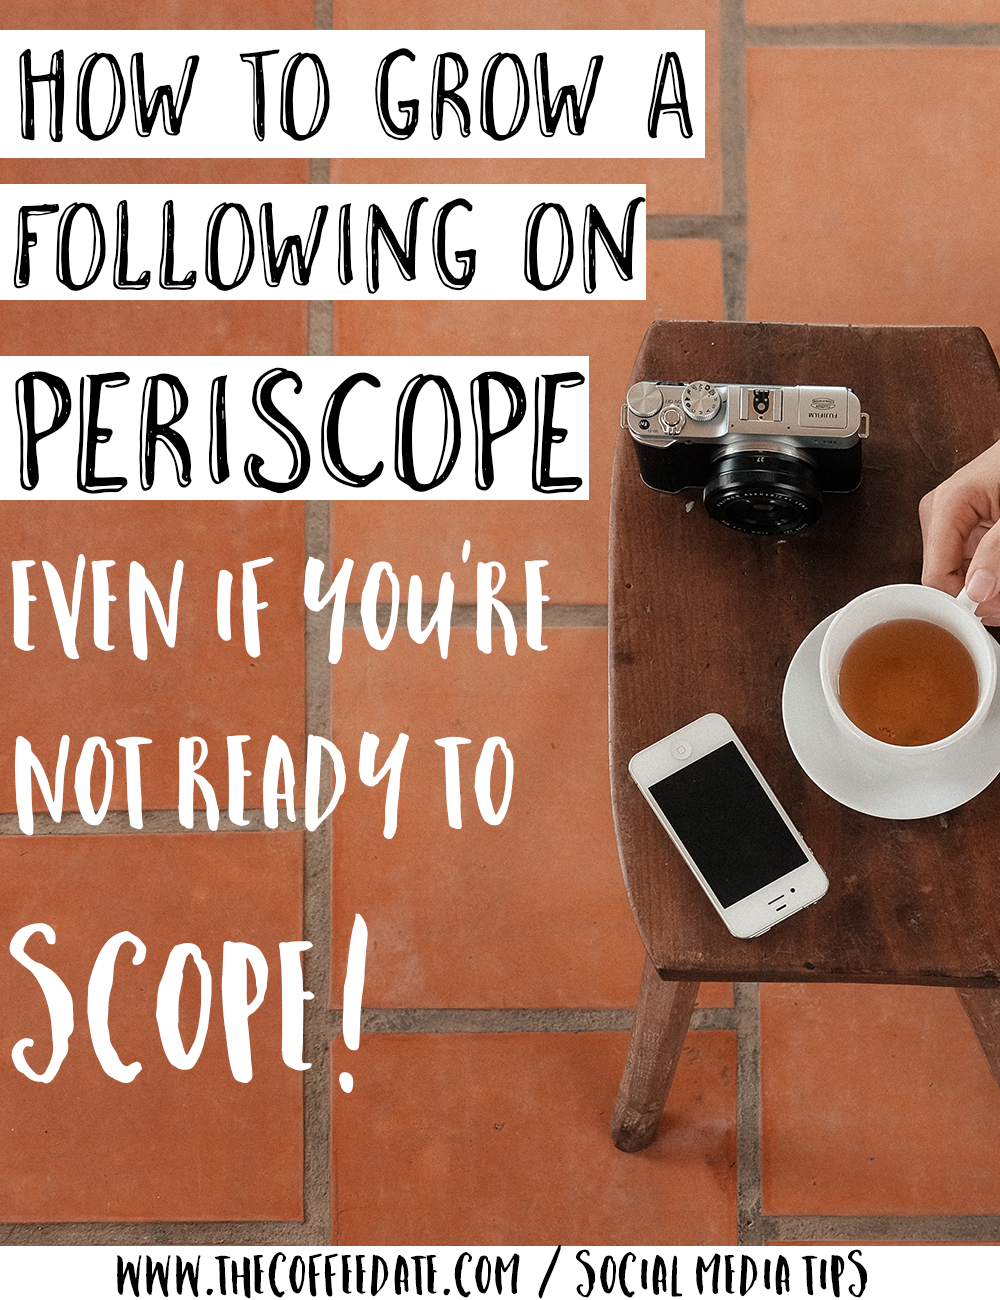 grow a following on periscope